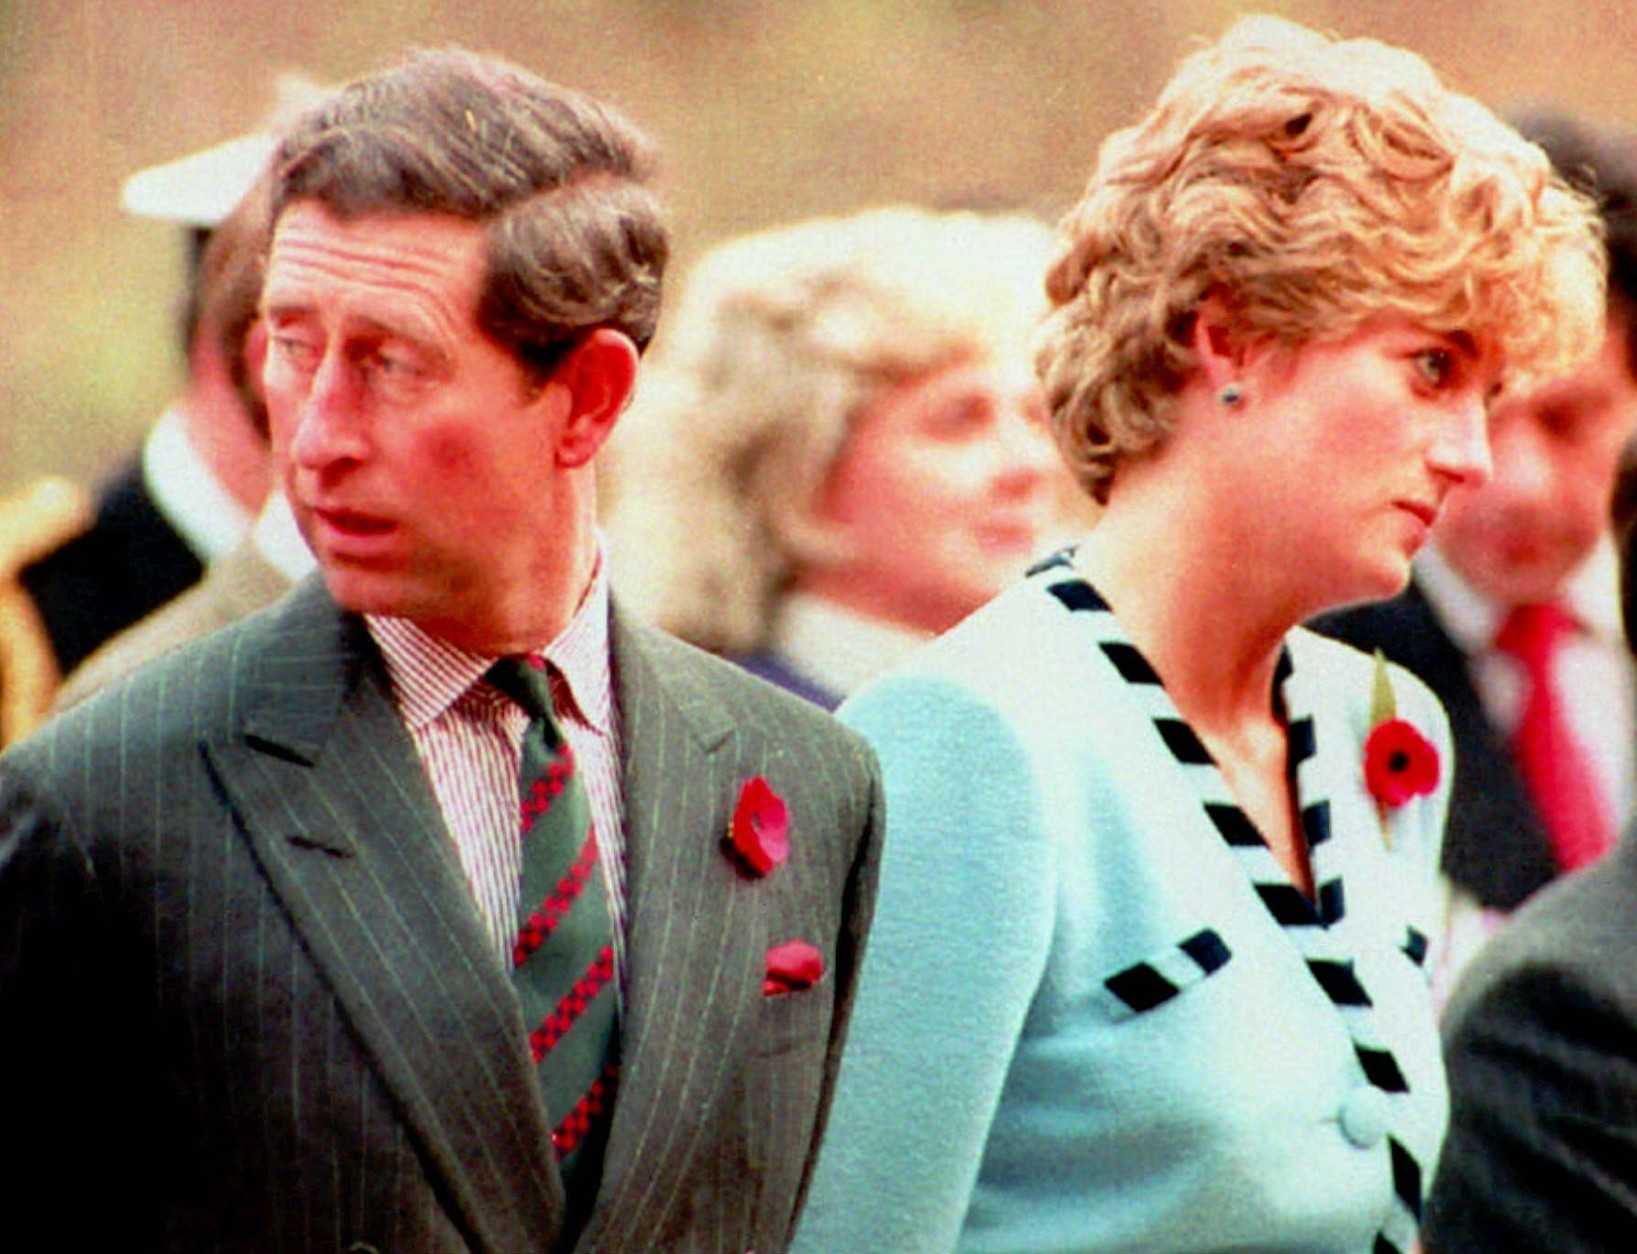 FILE--Britain's Prince and Princess of Wales are seen at a memorial service during their tour of Korea in this November 3, 1992 file photo. The world may be watching when the royal divorce becomes final Wedensday, August 28, 1996, but Charles and Diana will be as far apart as they were in the bad old days of their marriage. He will be secluded in Scotland and she will be at a charity lunch in London. (AP Photo)